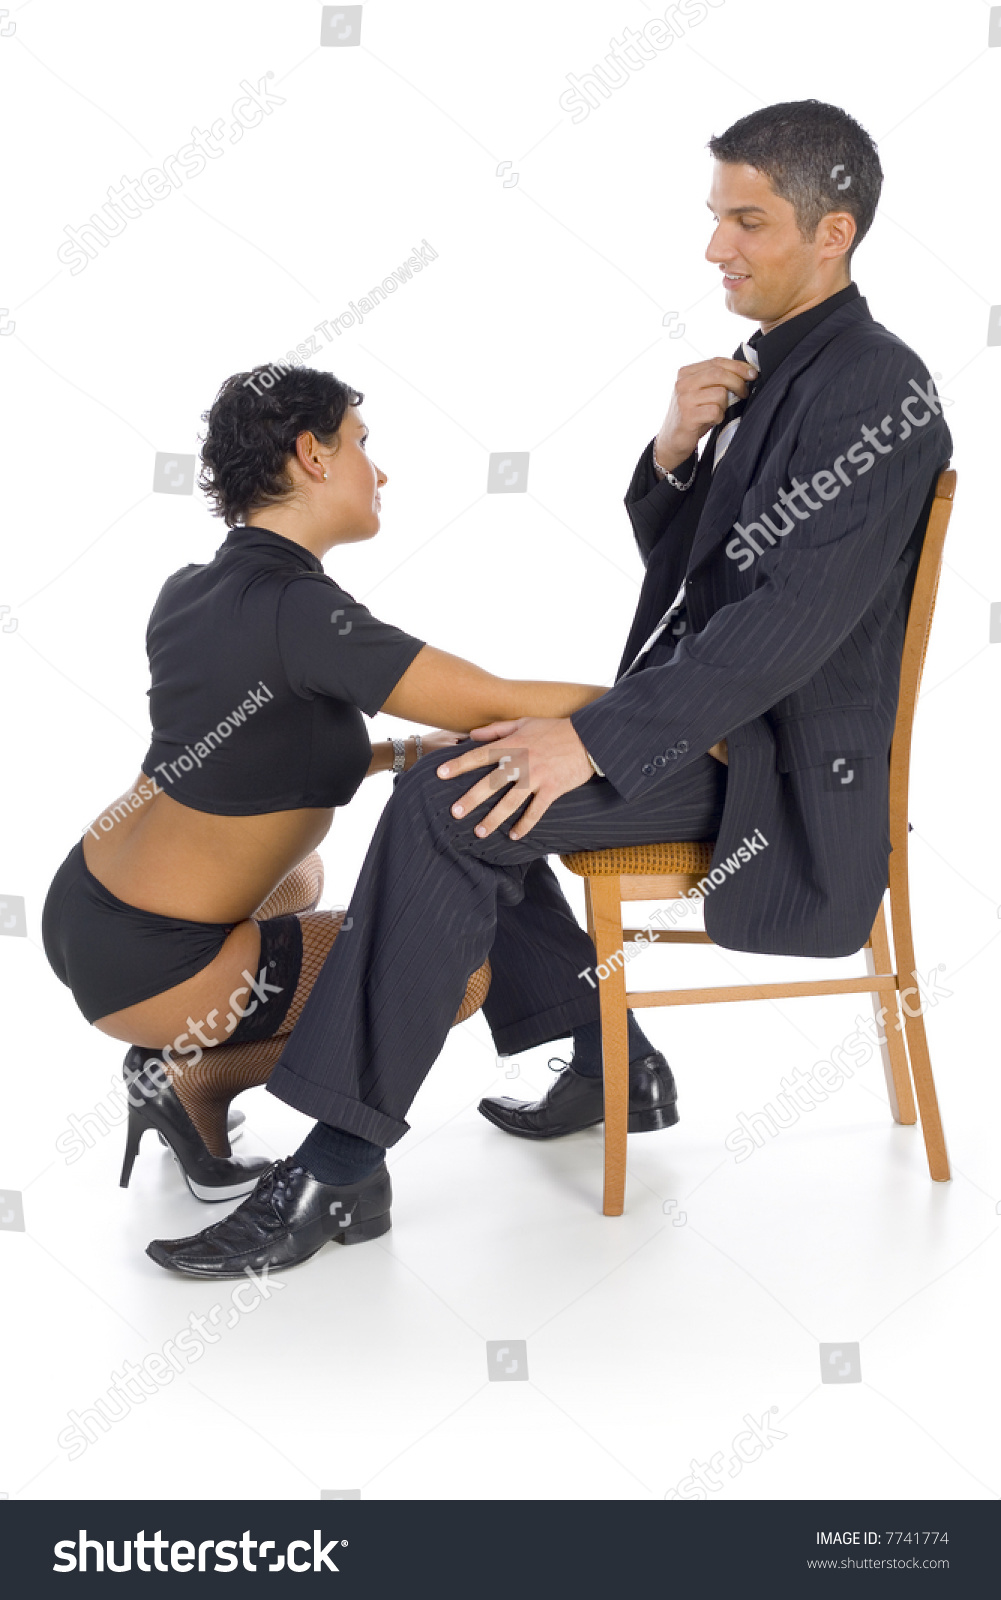 Man sitting in chair side - Stripteaser Squatting In Front Of Businessman The Man Is Sitting On Chair Isolated On